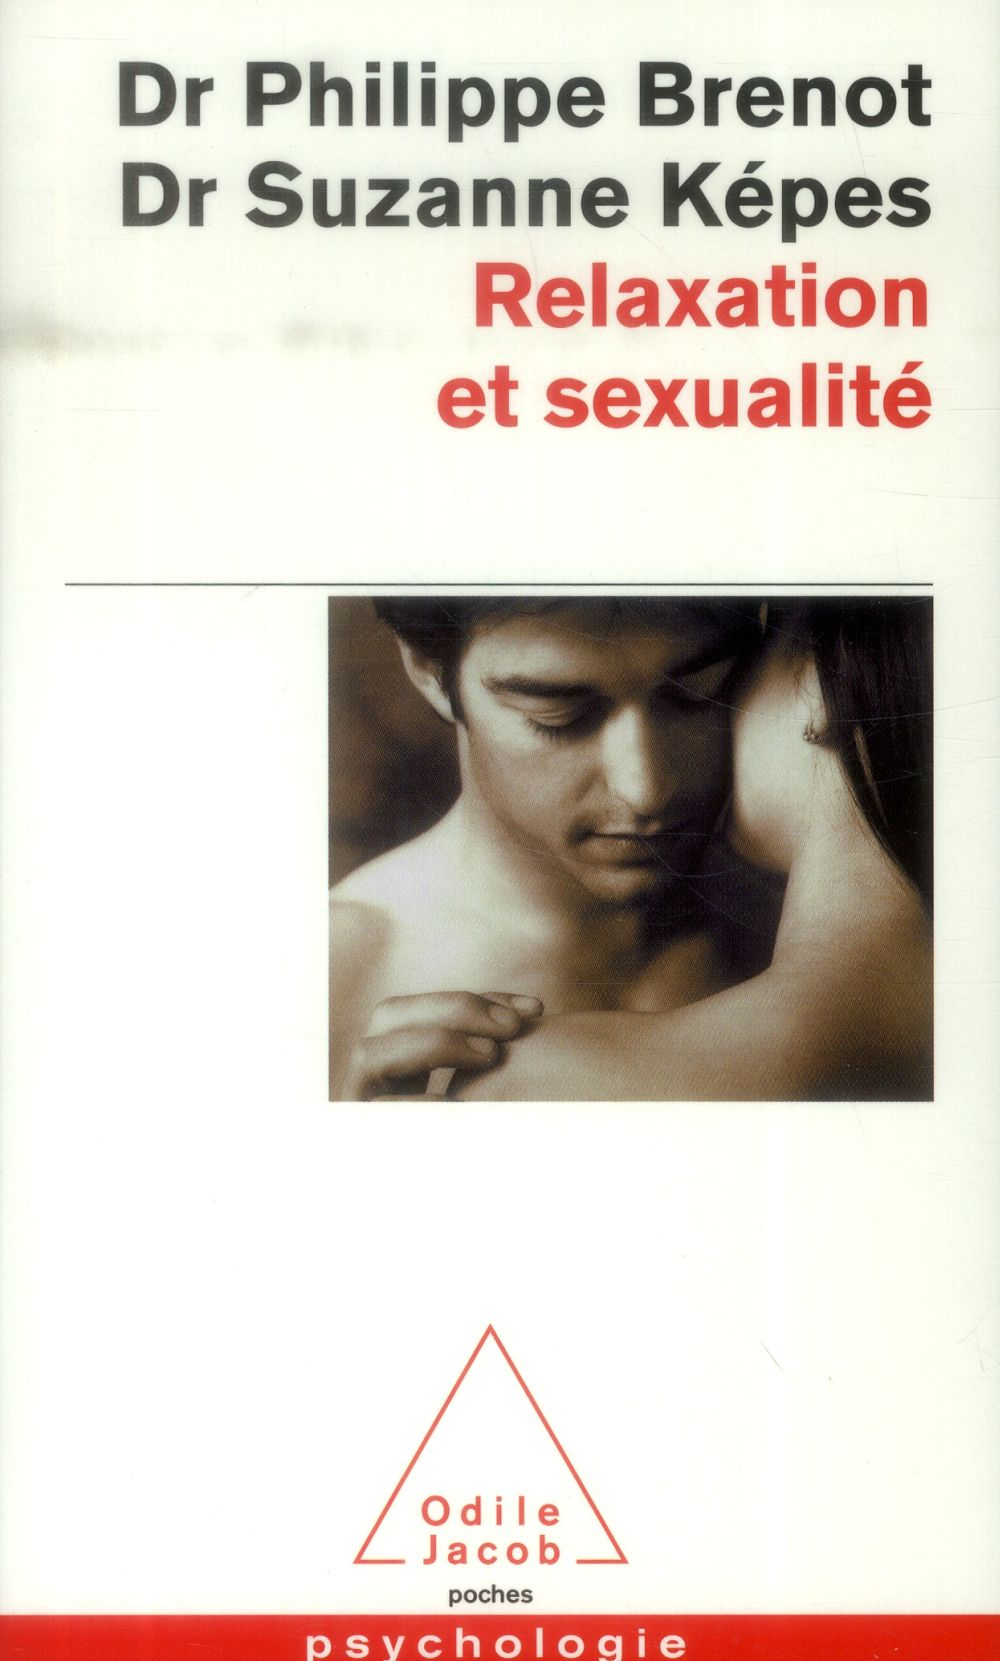 RELAXATION ET SEXUALITE